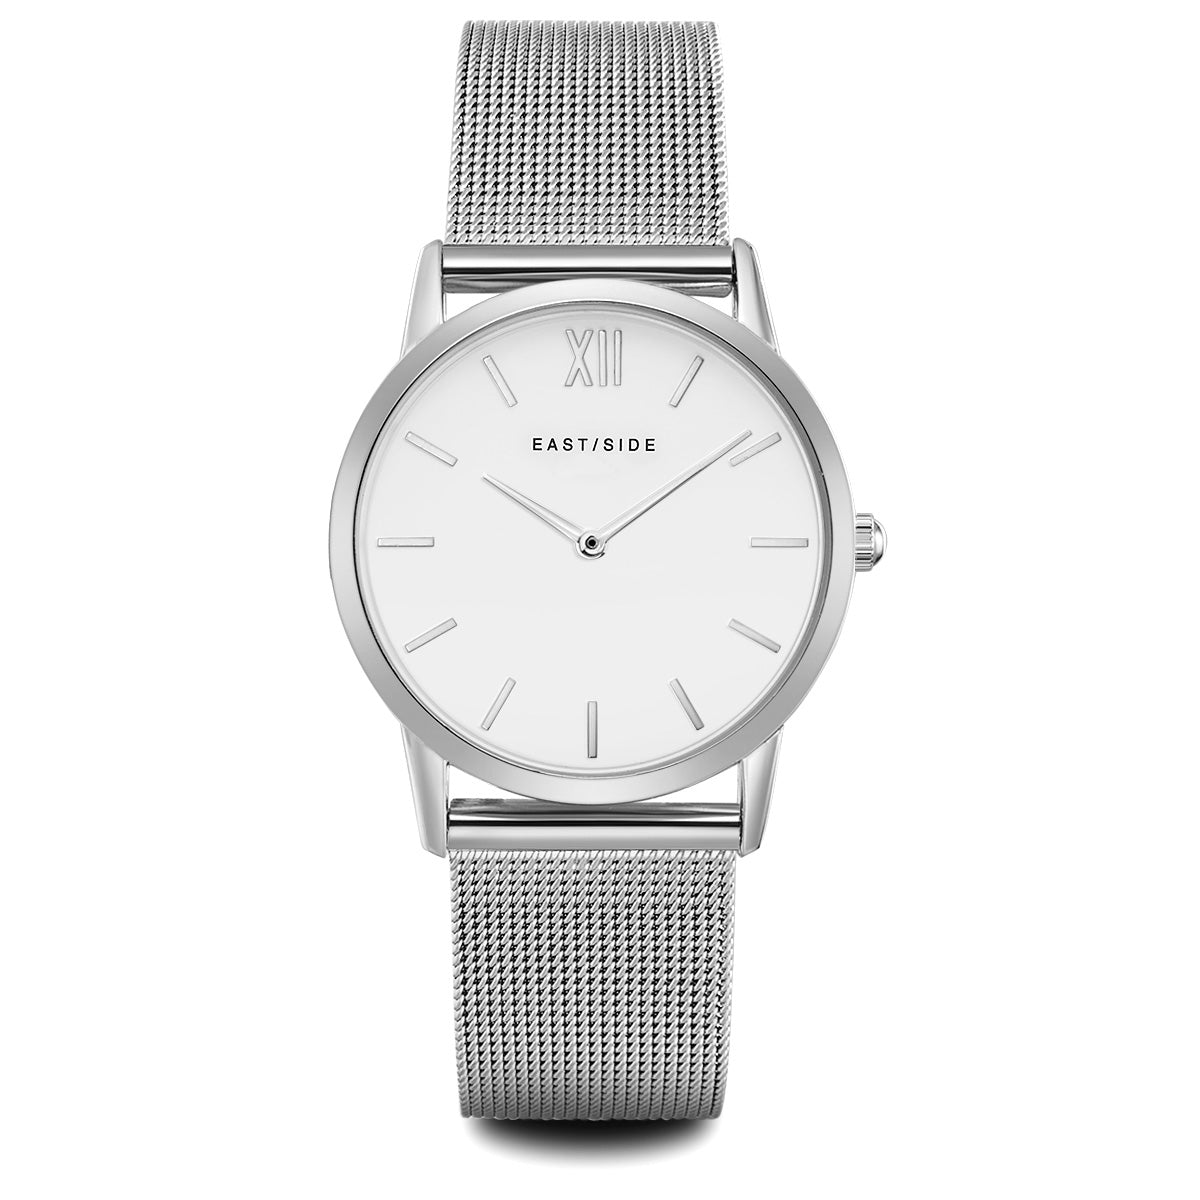 australis earnshaw thomas lady watches products white es